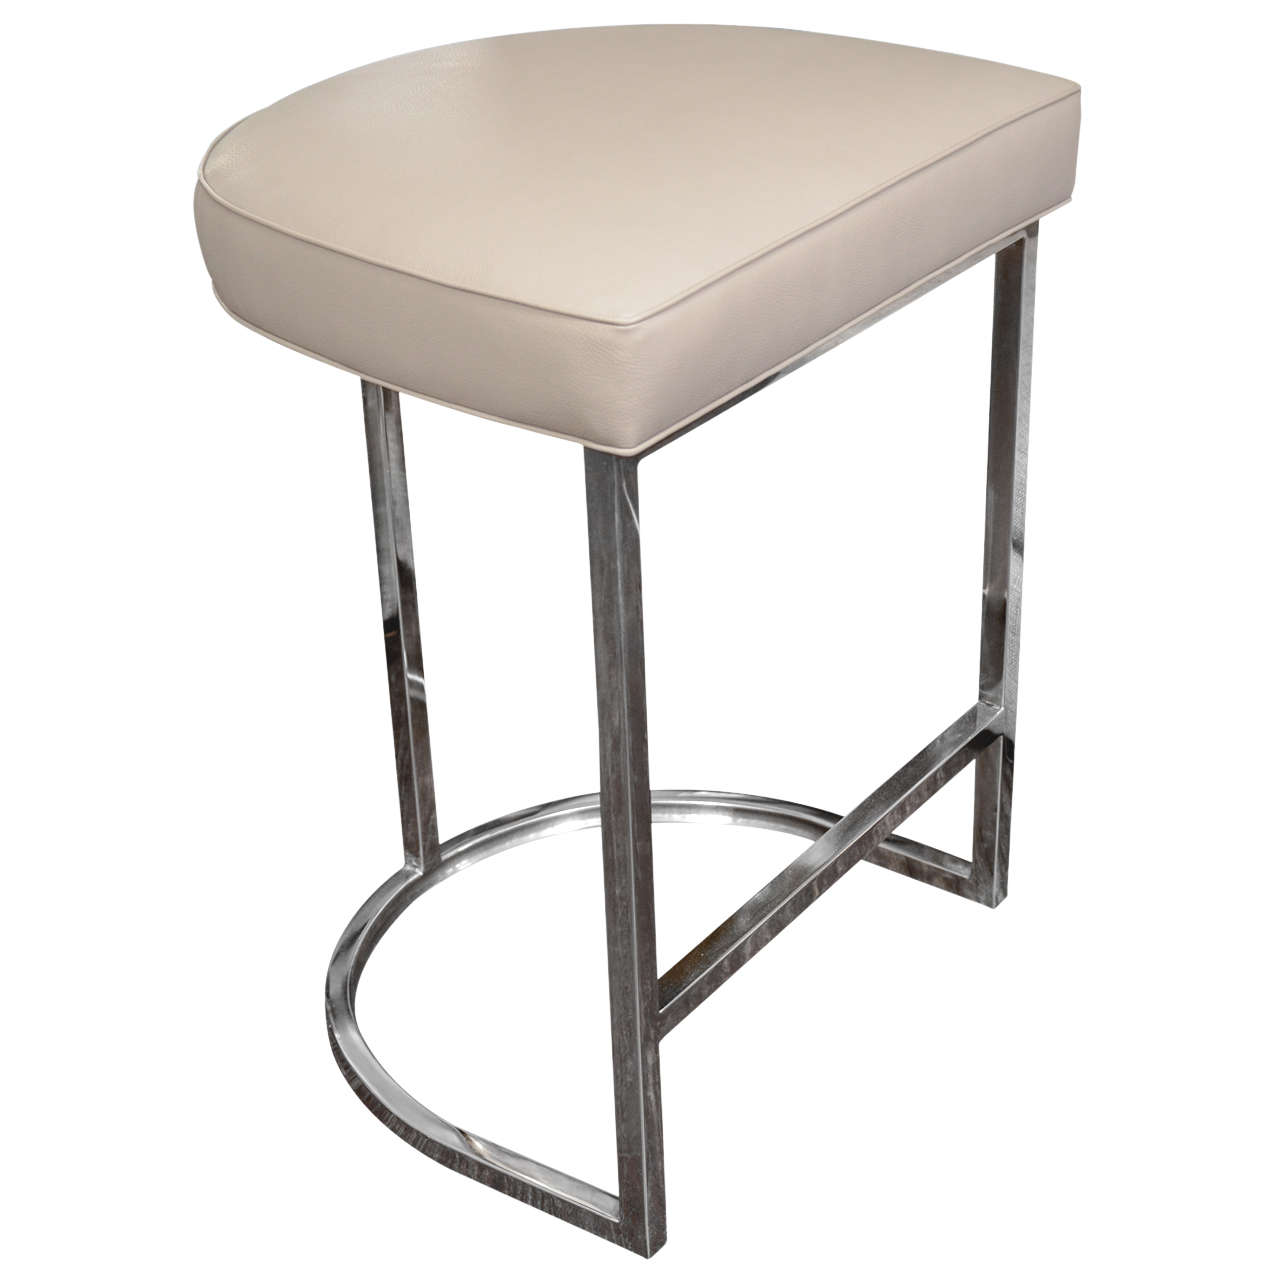 Stainless Bar Stools Single Bar Stool With Mirrored Stainless Steel Base At 1stdibs